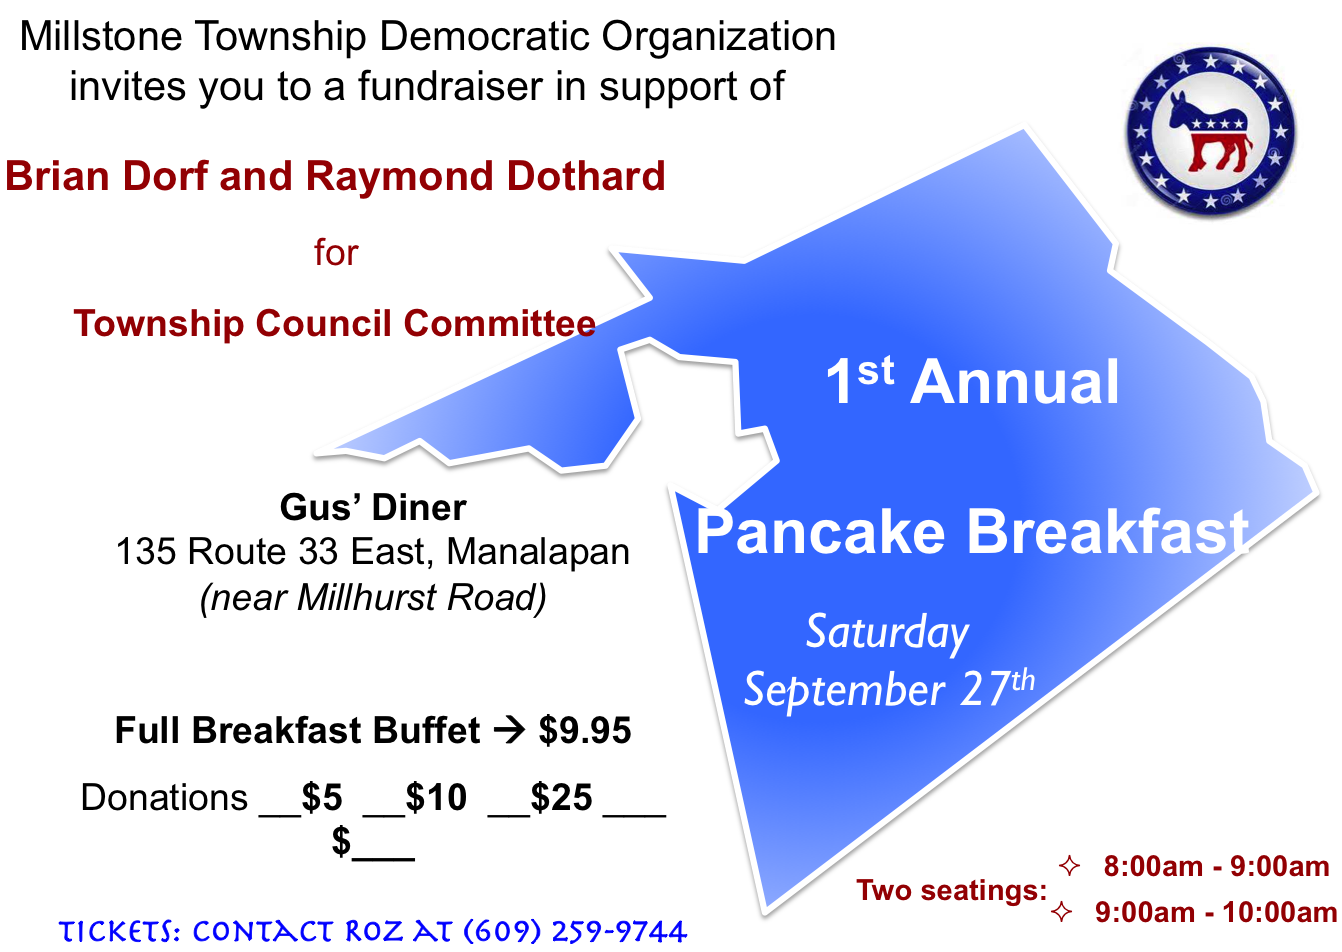 2014_Annual_Pancake_Breakfast_v1.png